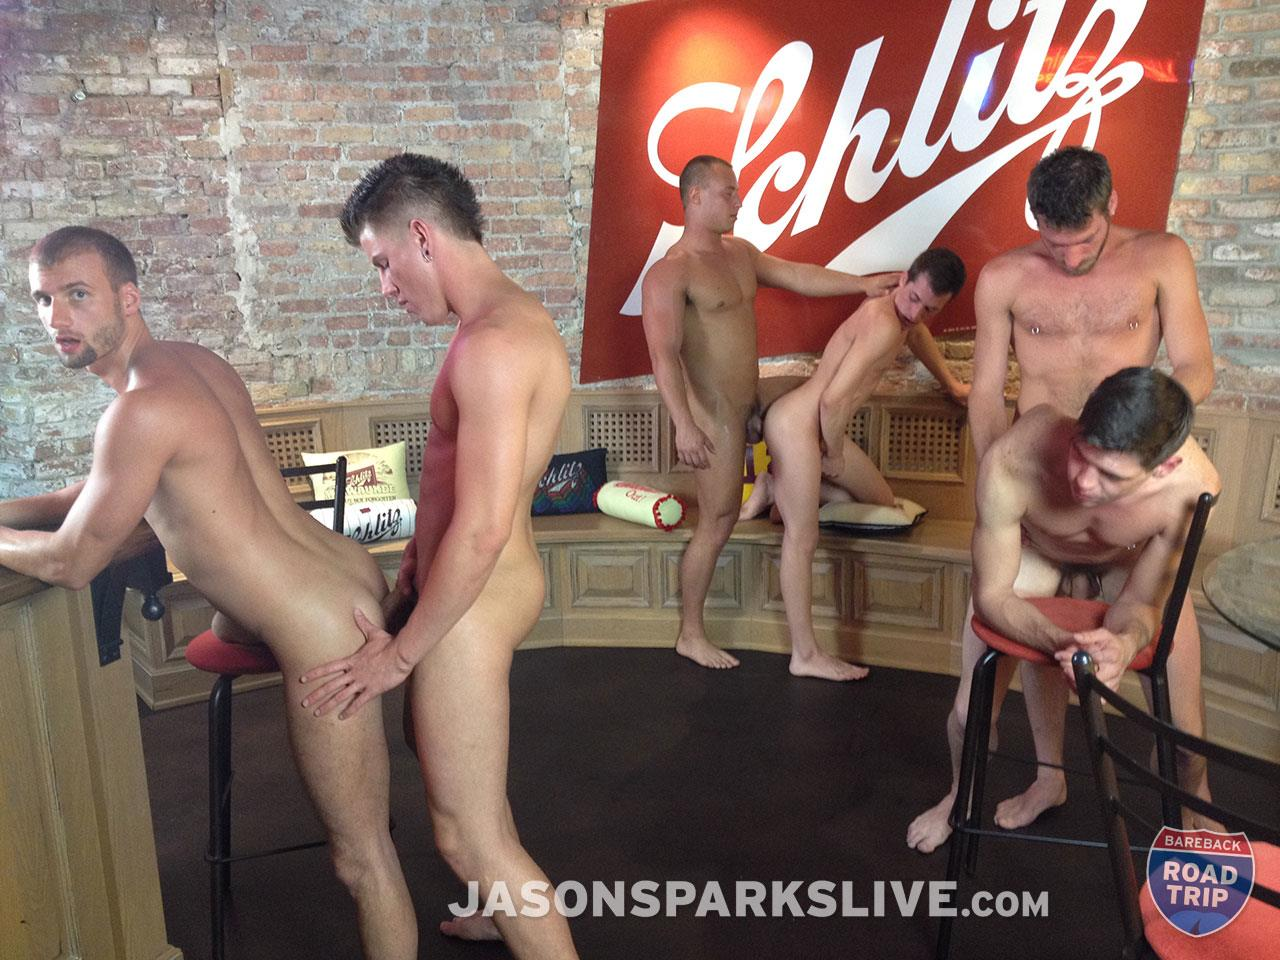 Jason-Sparks-Live-Dustin-Tyler-Shawn-Andrews-Brendon-Scott-Corbin-Riley-Antonio-Paul-Jake-Matthews-Bareback-Orgy-Amateur-Gay-Porn-12 Big Cock Amateur Bareback Orgy in Milwaukee